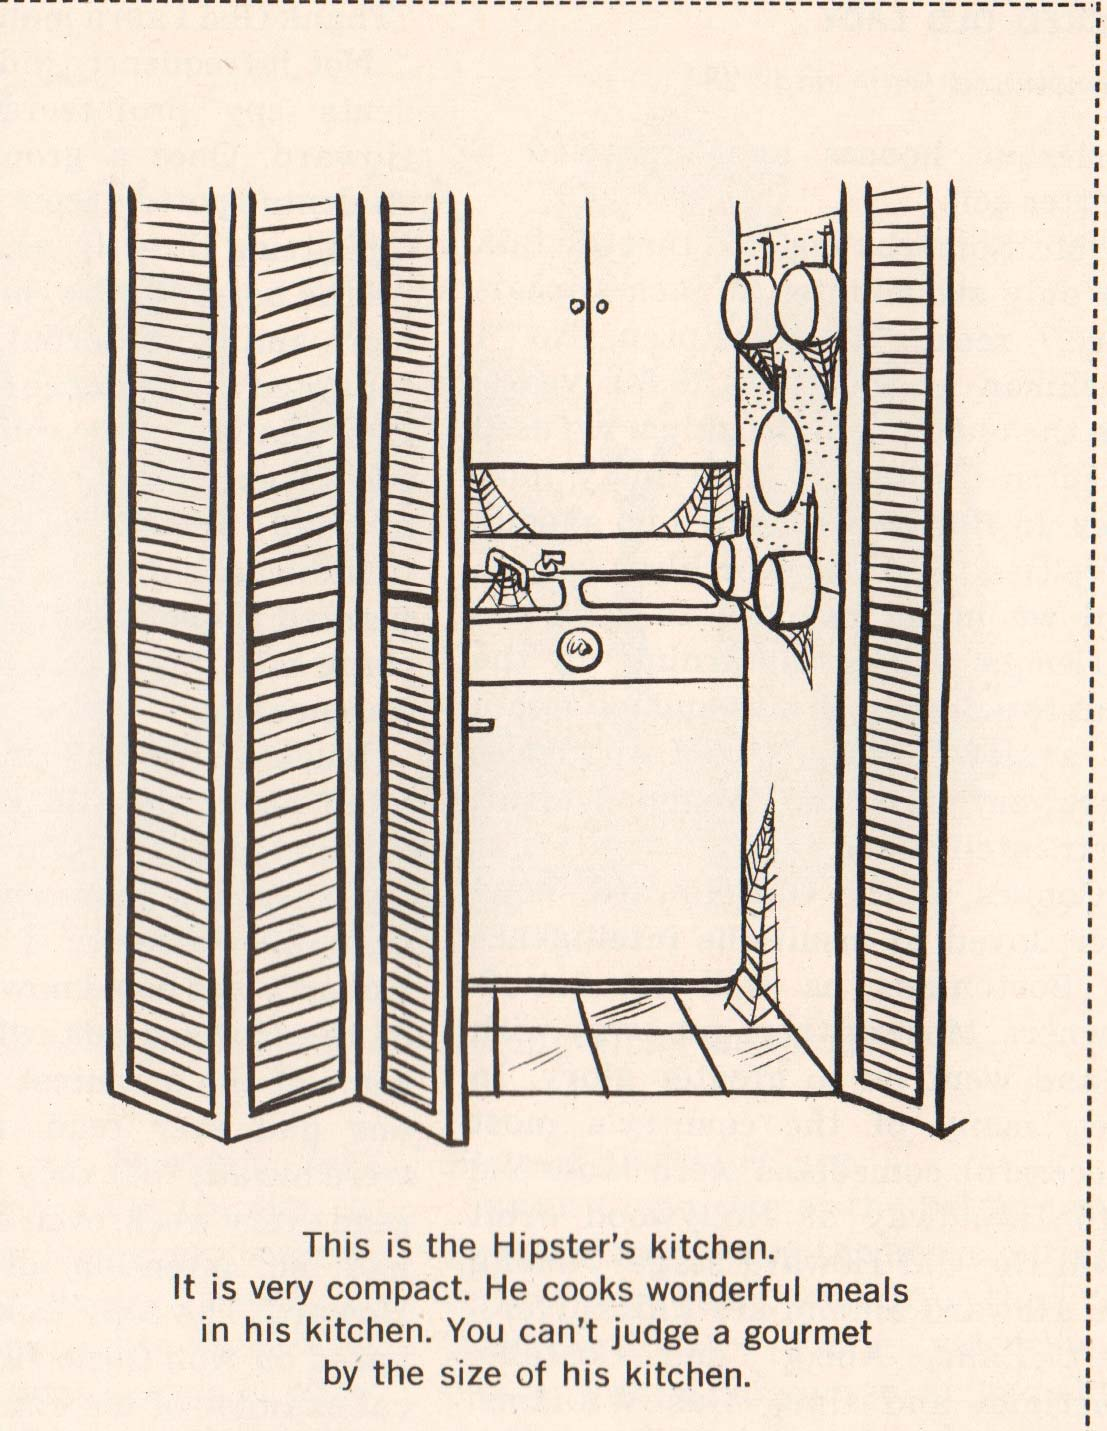 Hipster Coloring Book 1962 (10)